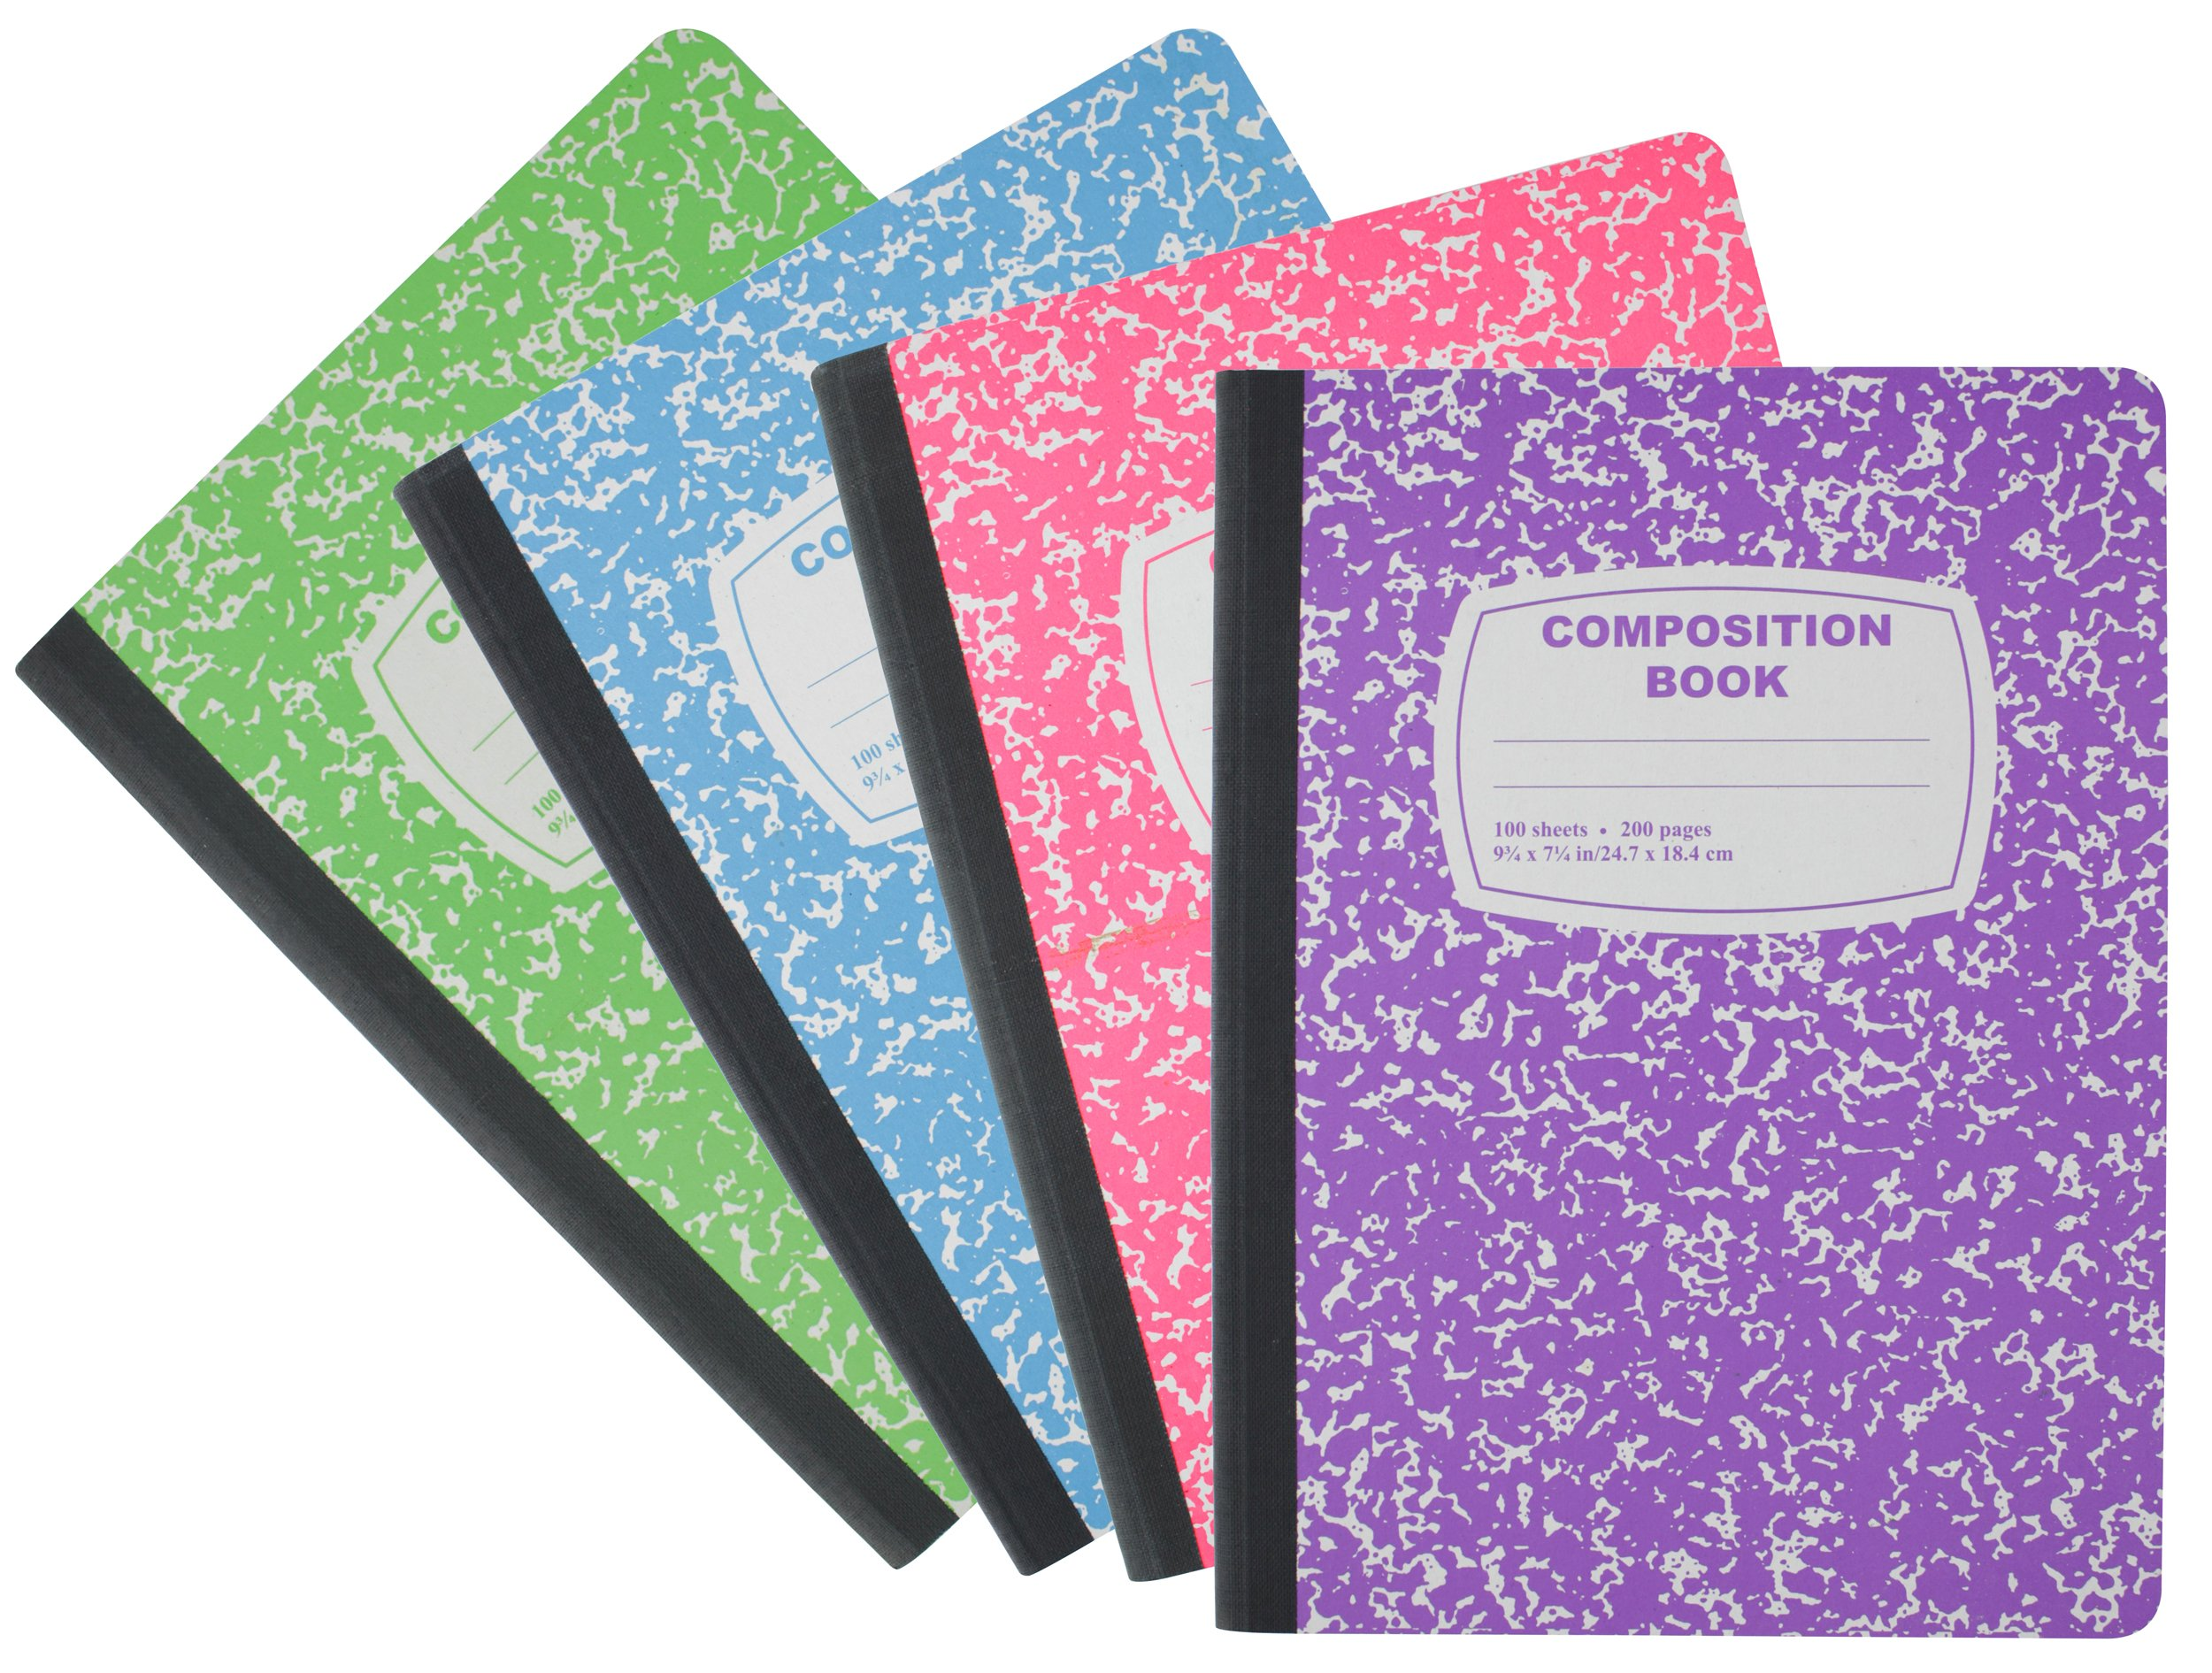 Emraw Neon Color Cover Composition Book with 100 Sheets of wide ruled white paper (3 Random Pack) Neon Purple, Neon Blue, Neon Green, Neon Pink by Emraw